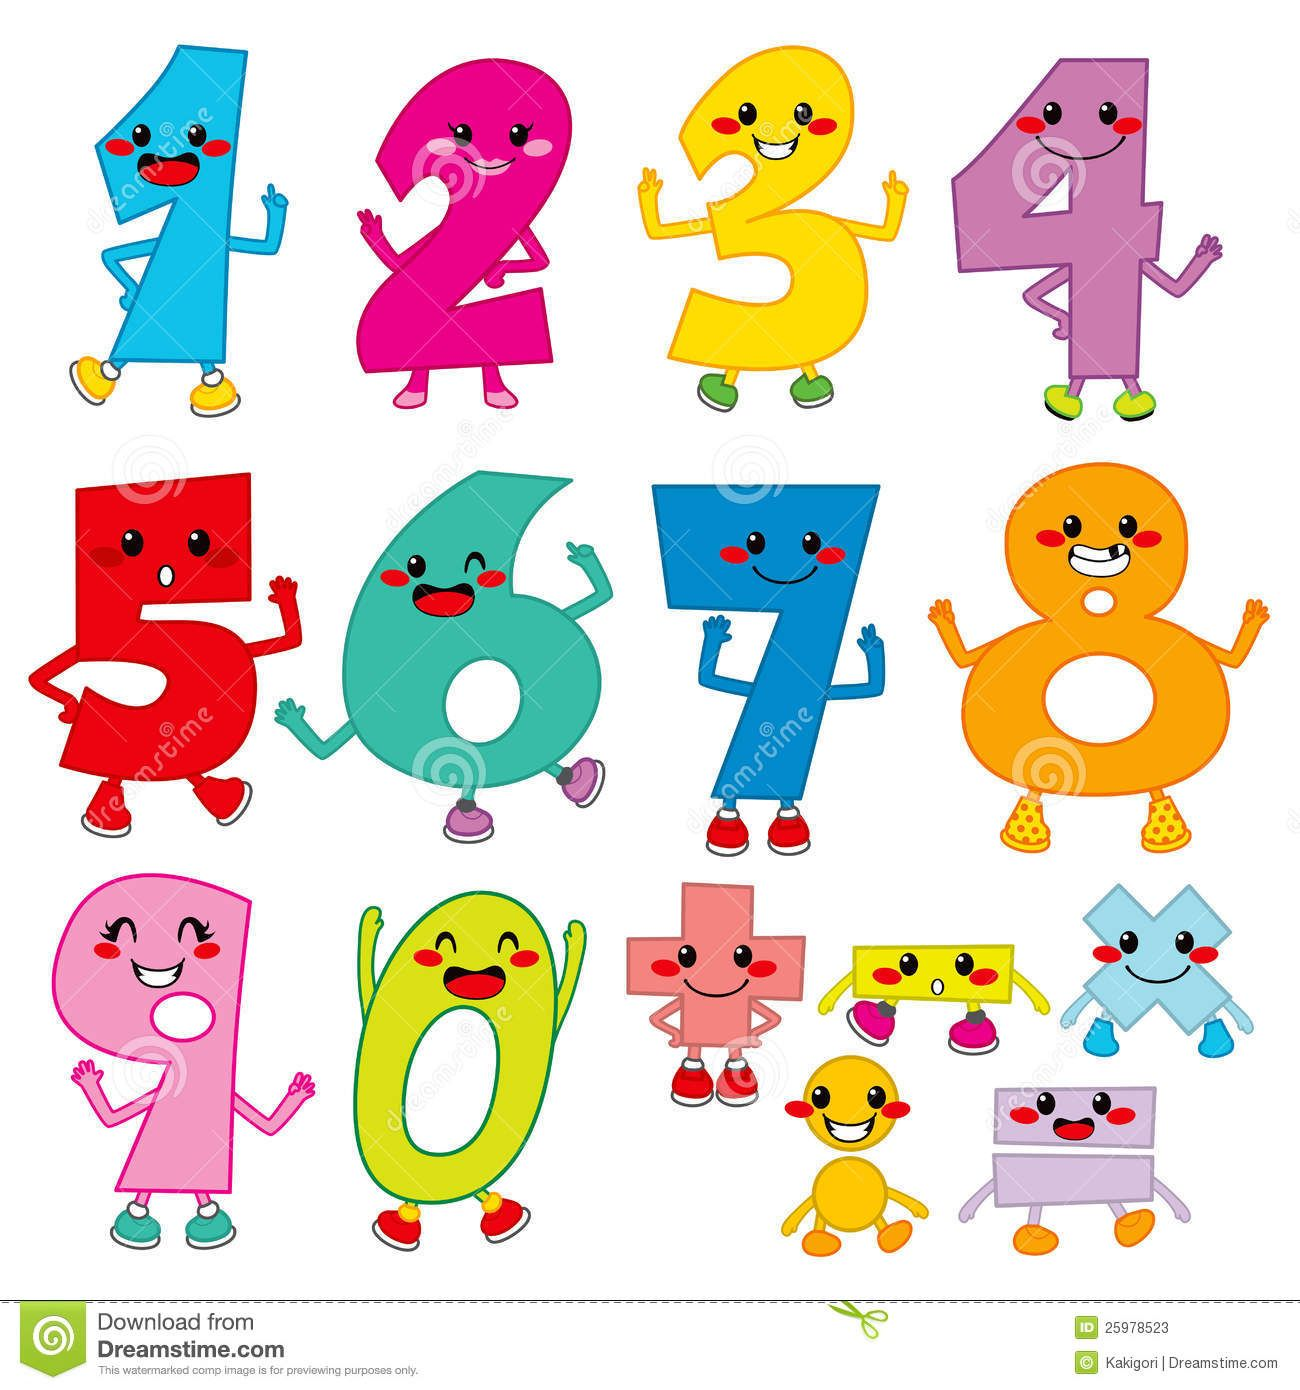 Funny Cartoon Numbers Download From Over 70 Million High Quality Stock Photos Images Vectors Sign Up For With Images Art Activities For Kids Scrapbook Fonts Kid Fonts